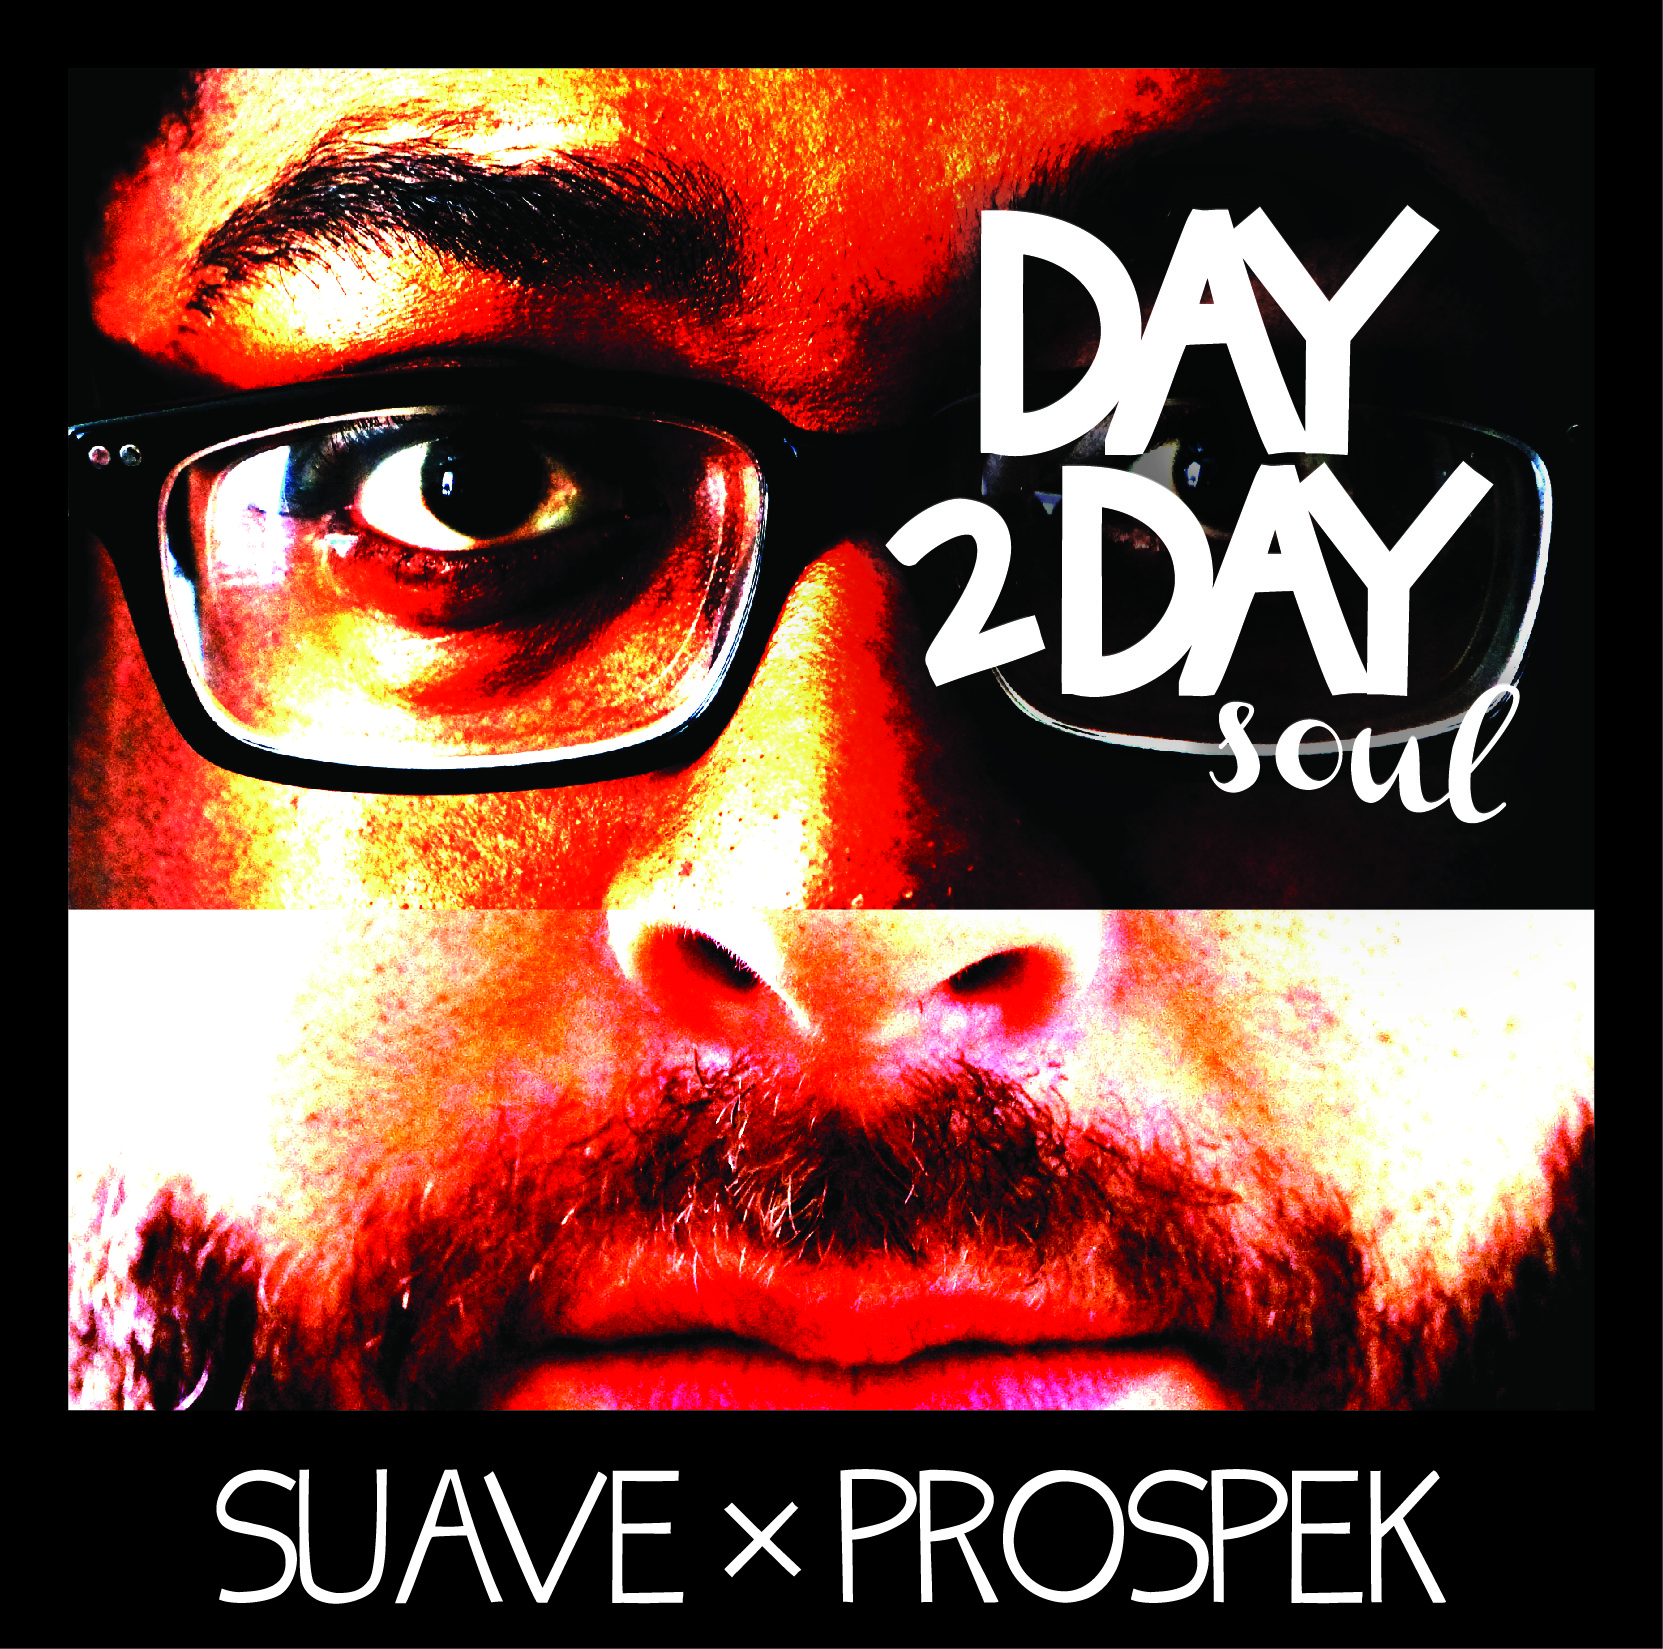 Free Download: Suave & Prospek – Day 2 Day Soul EP